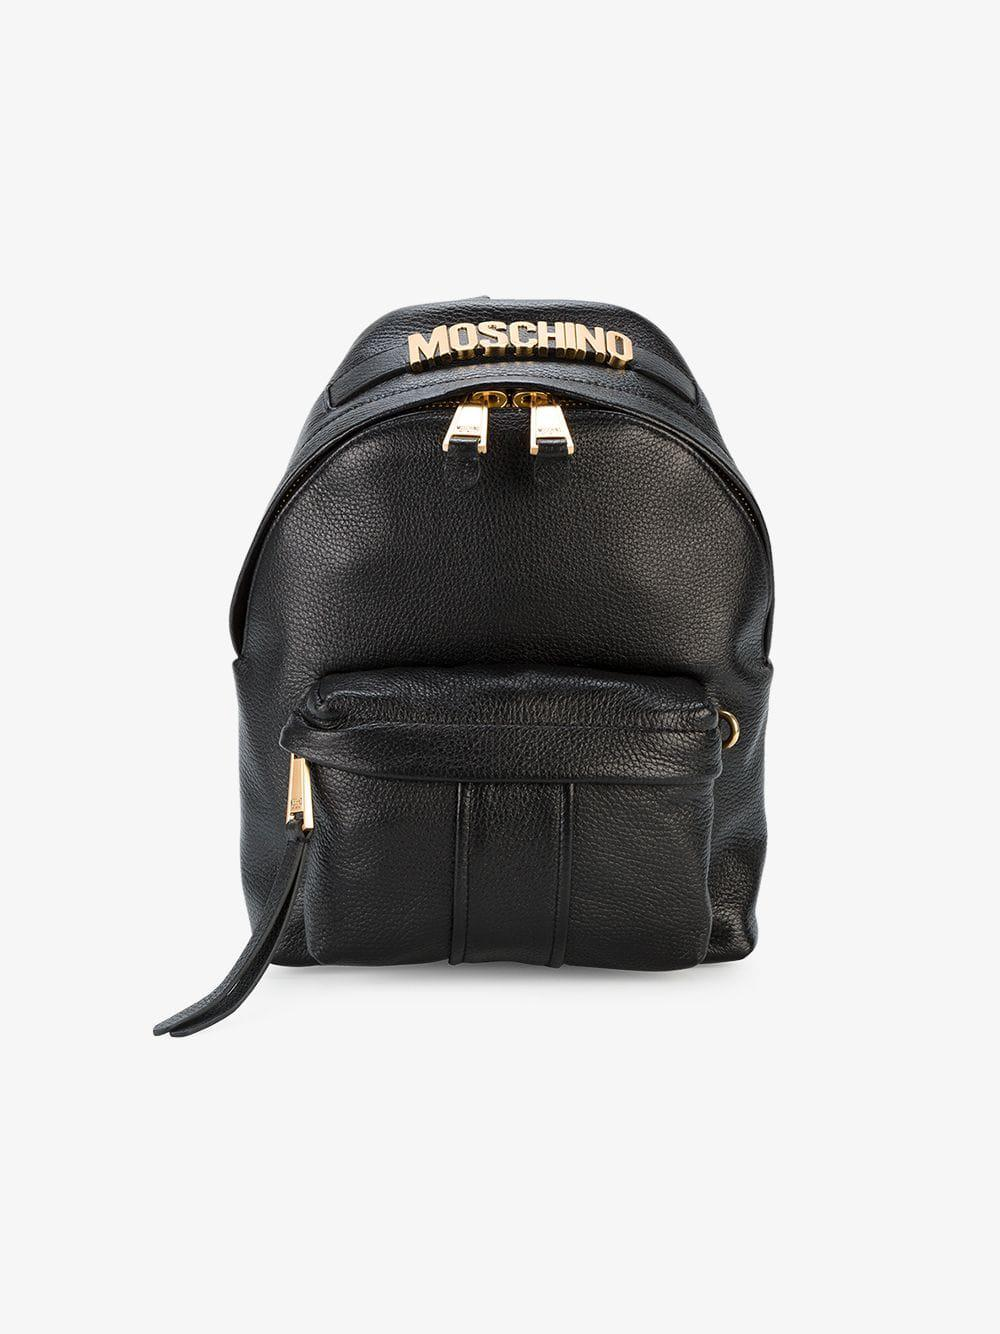 e3332e3076952 Lyst - Moschino Logo Plaque Mini Backpack in Black - Save  16.736401673640174%